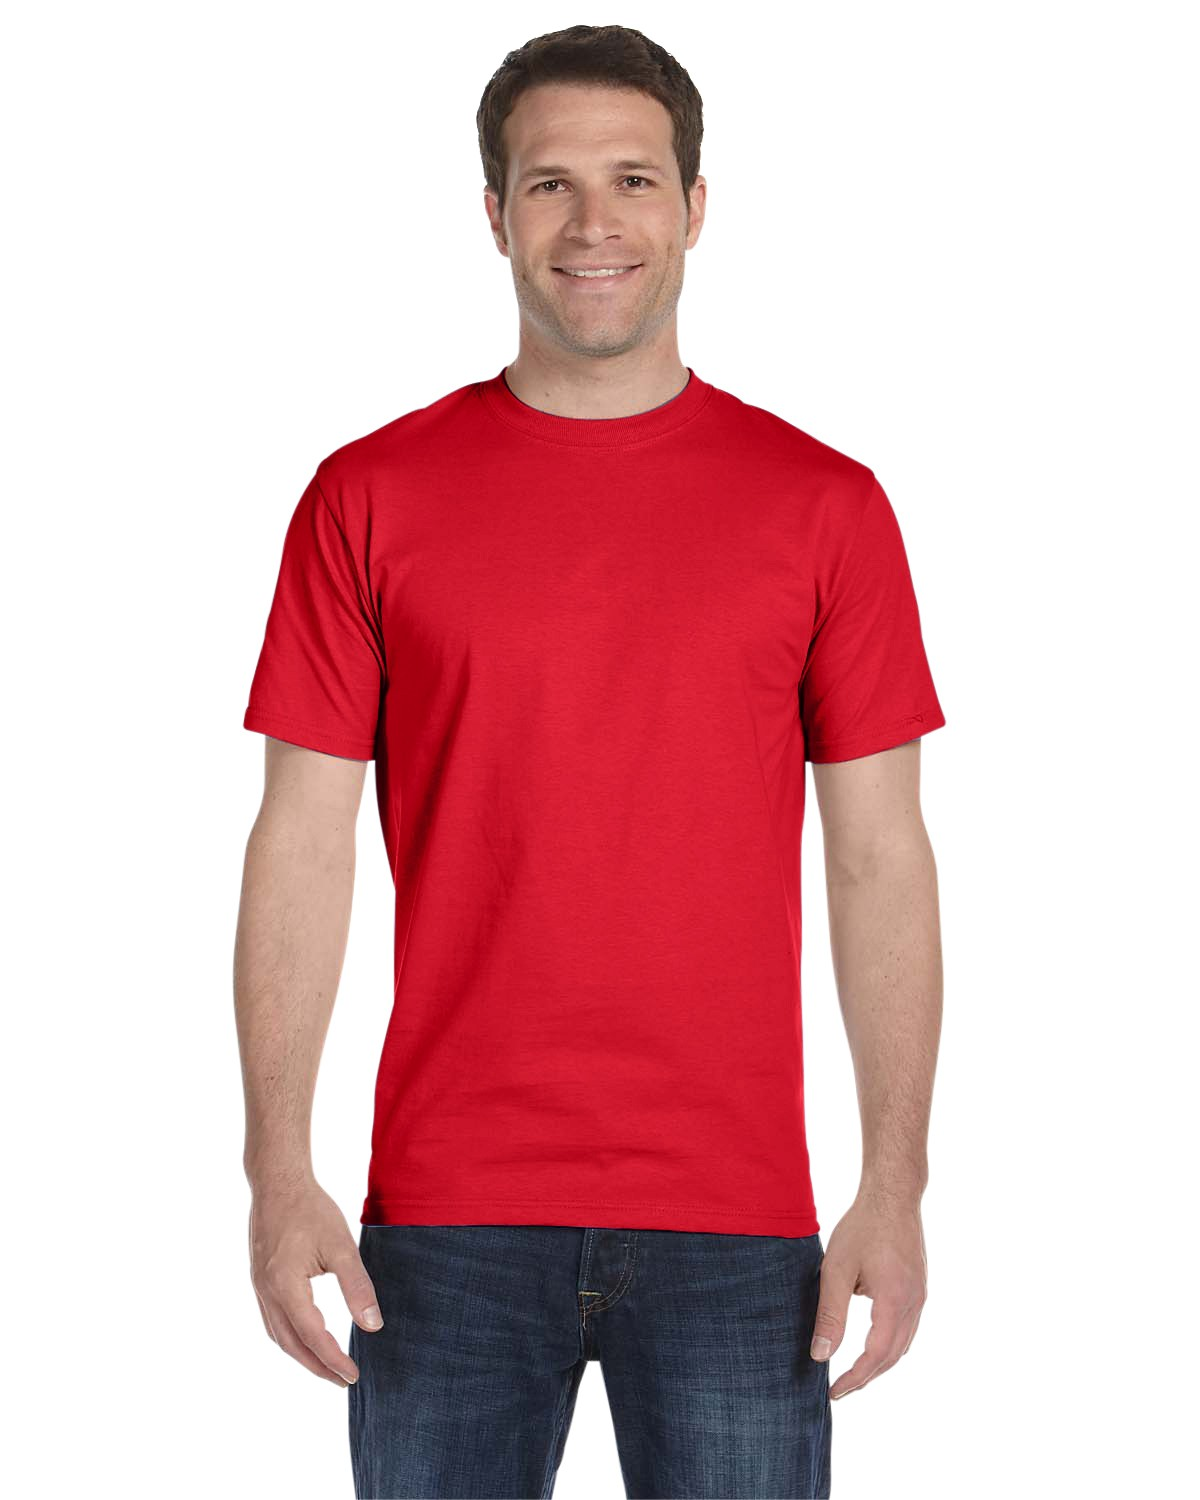 5180 Hanes Athletic Red